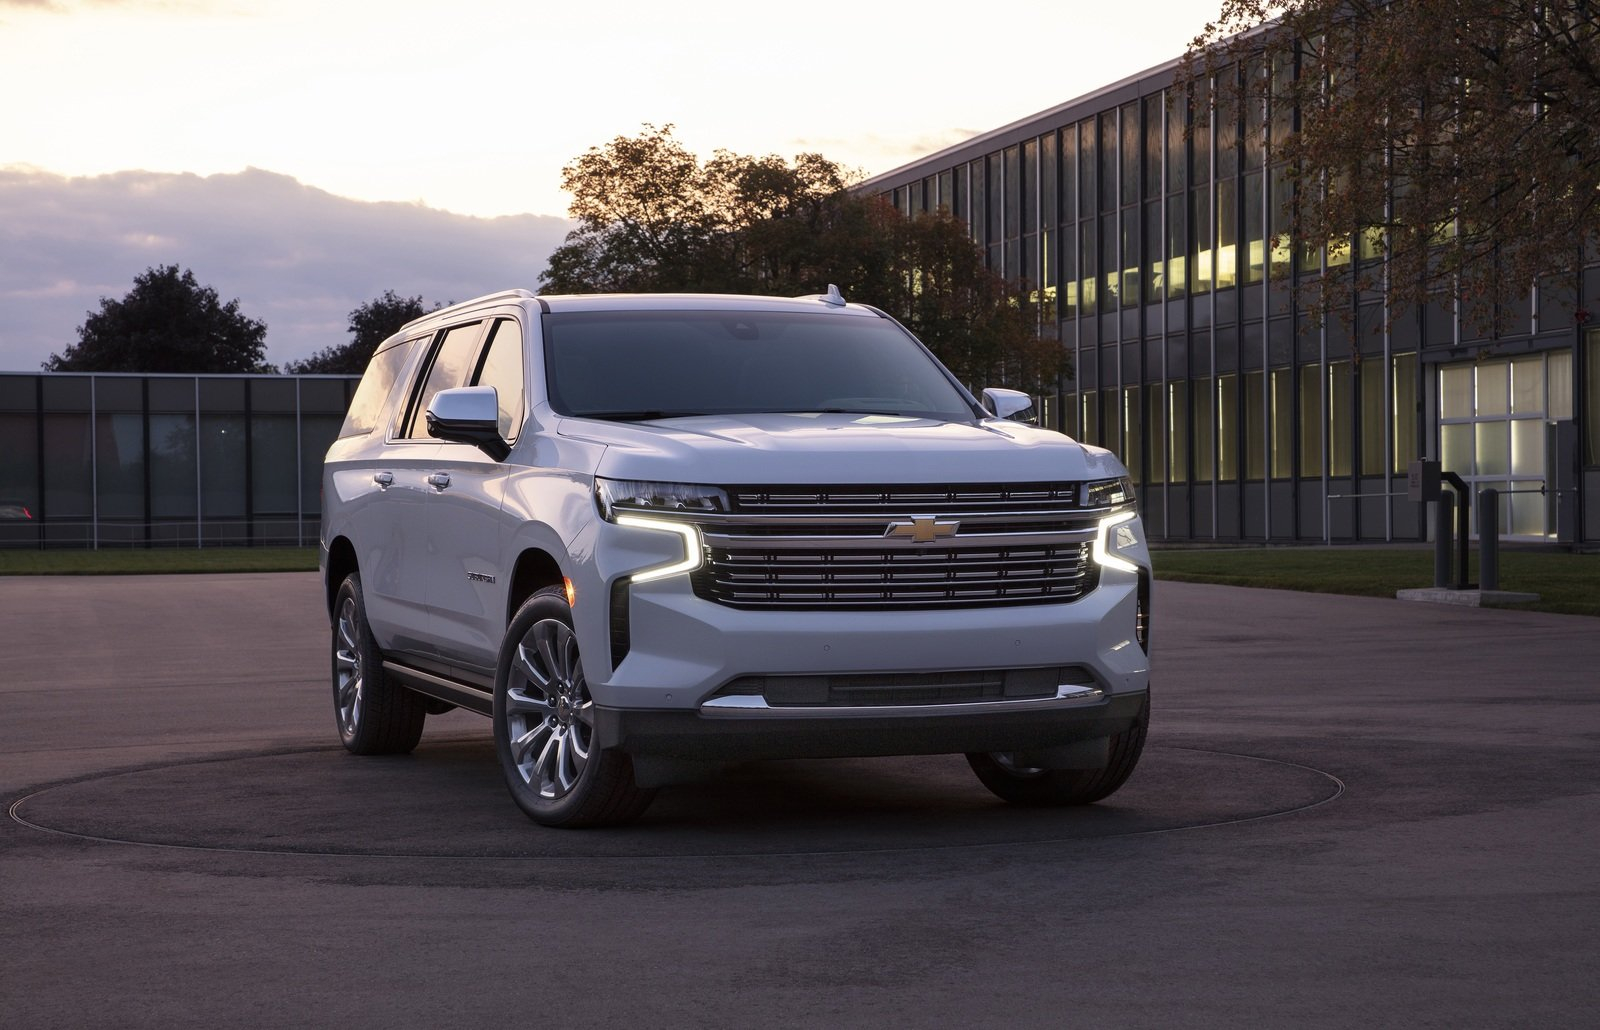 2021 Chevy Suburban Can A 2021 Chevy Blazer Be Flat Towed